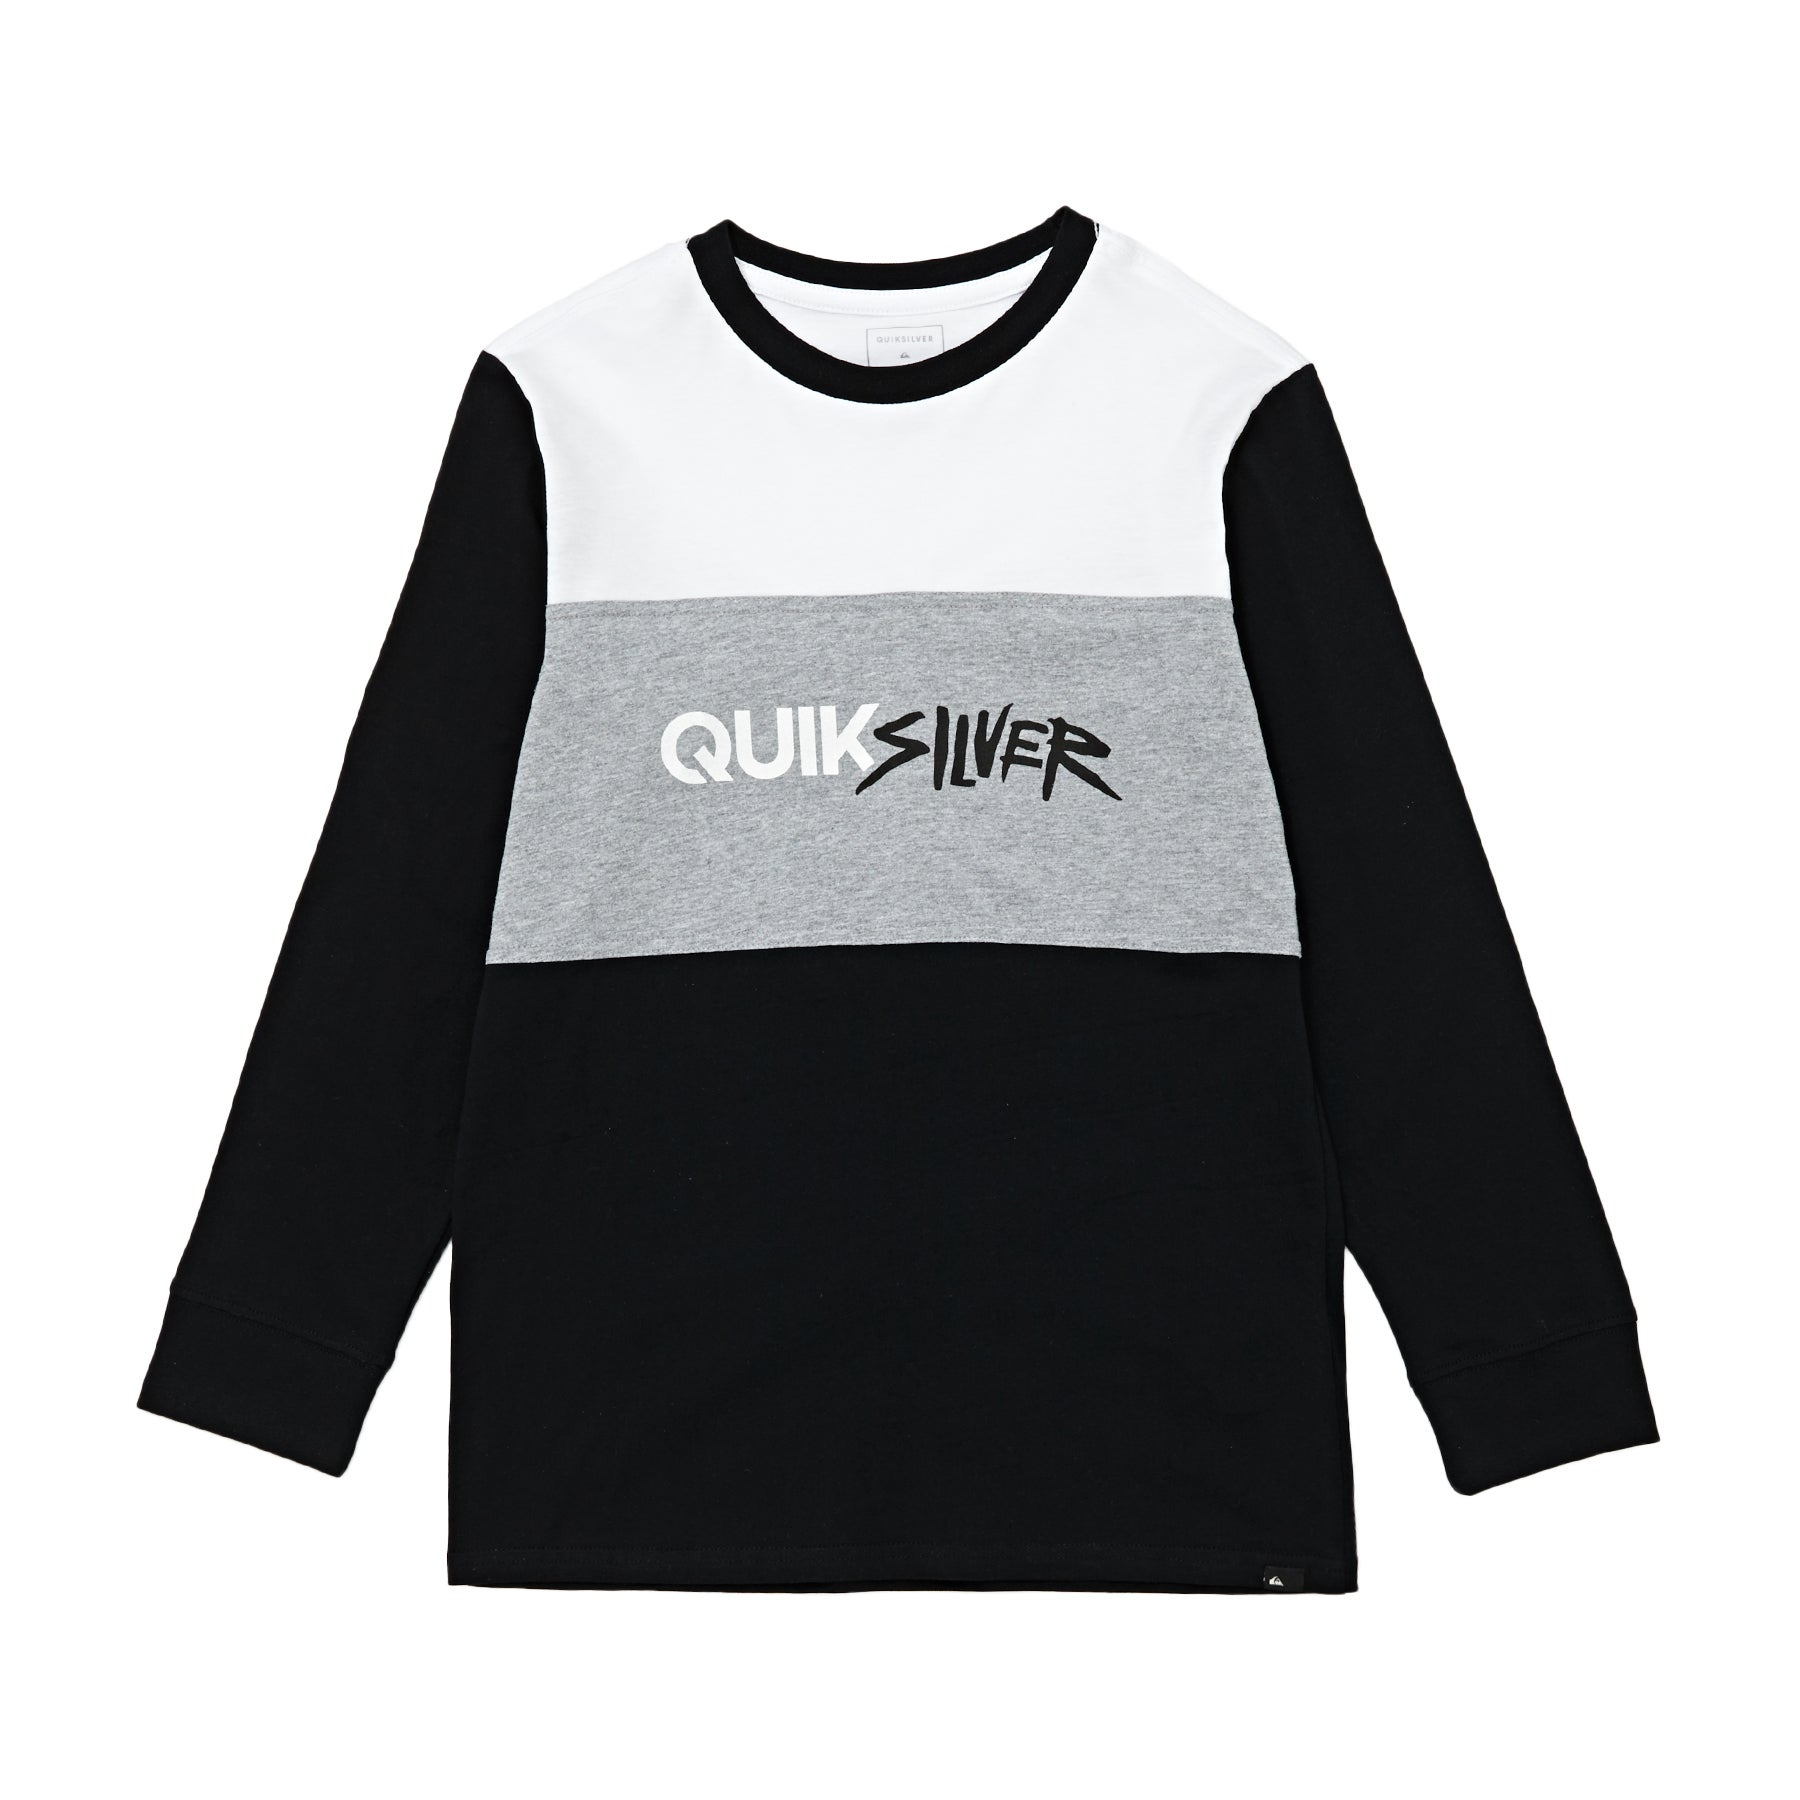 Quiksilver Opposite Attract Boys Long Sleeve T-Shirt - White